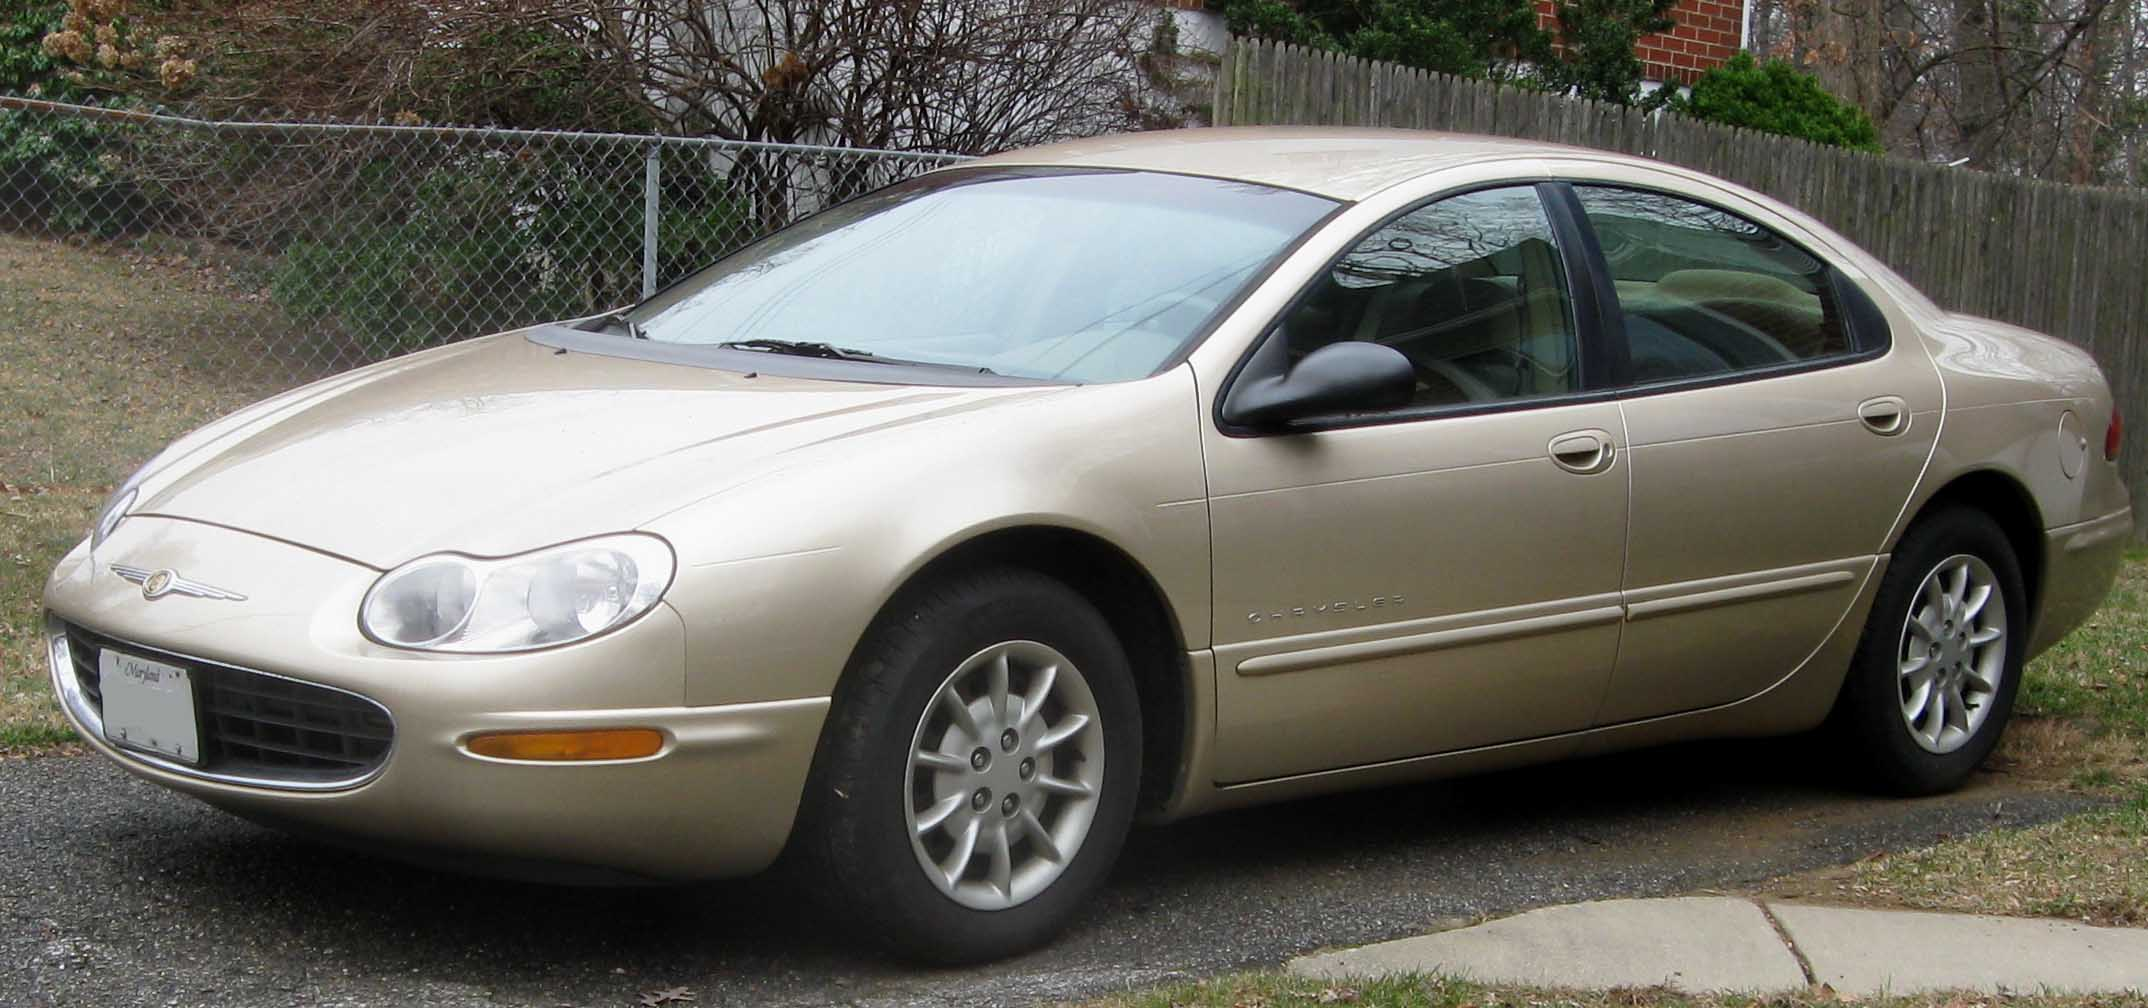 file 2nd chrysler concorde jpg wikimedia commons. Cars Review. Best American Auto & Cars Review